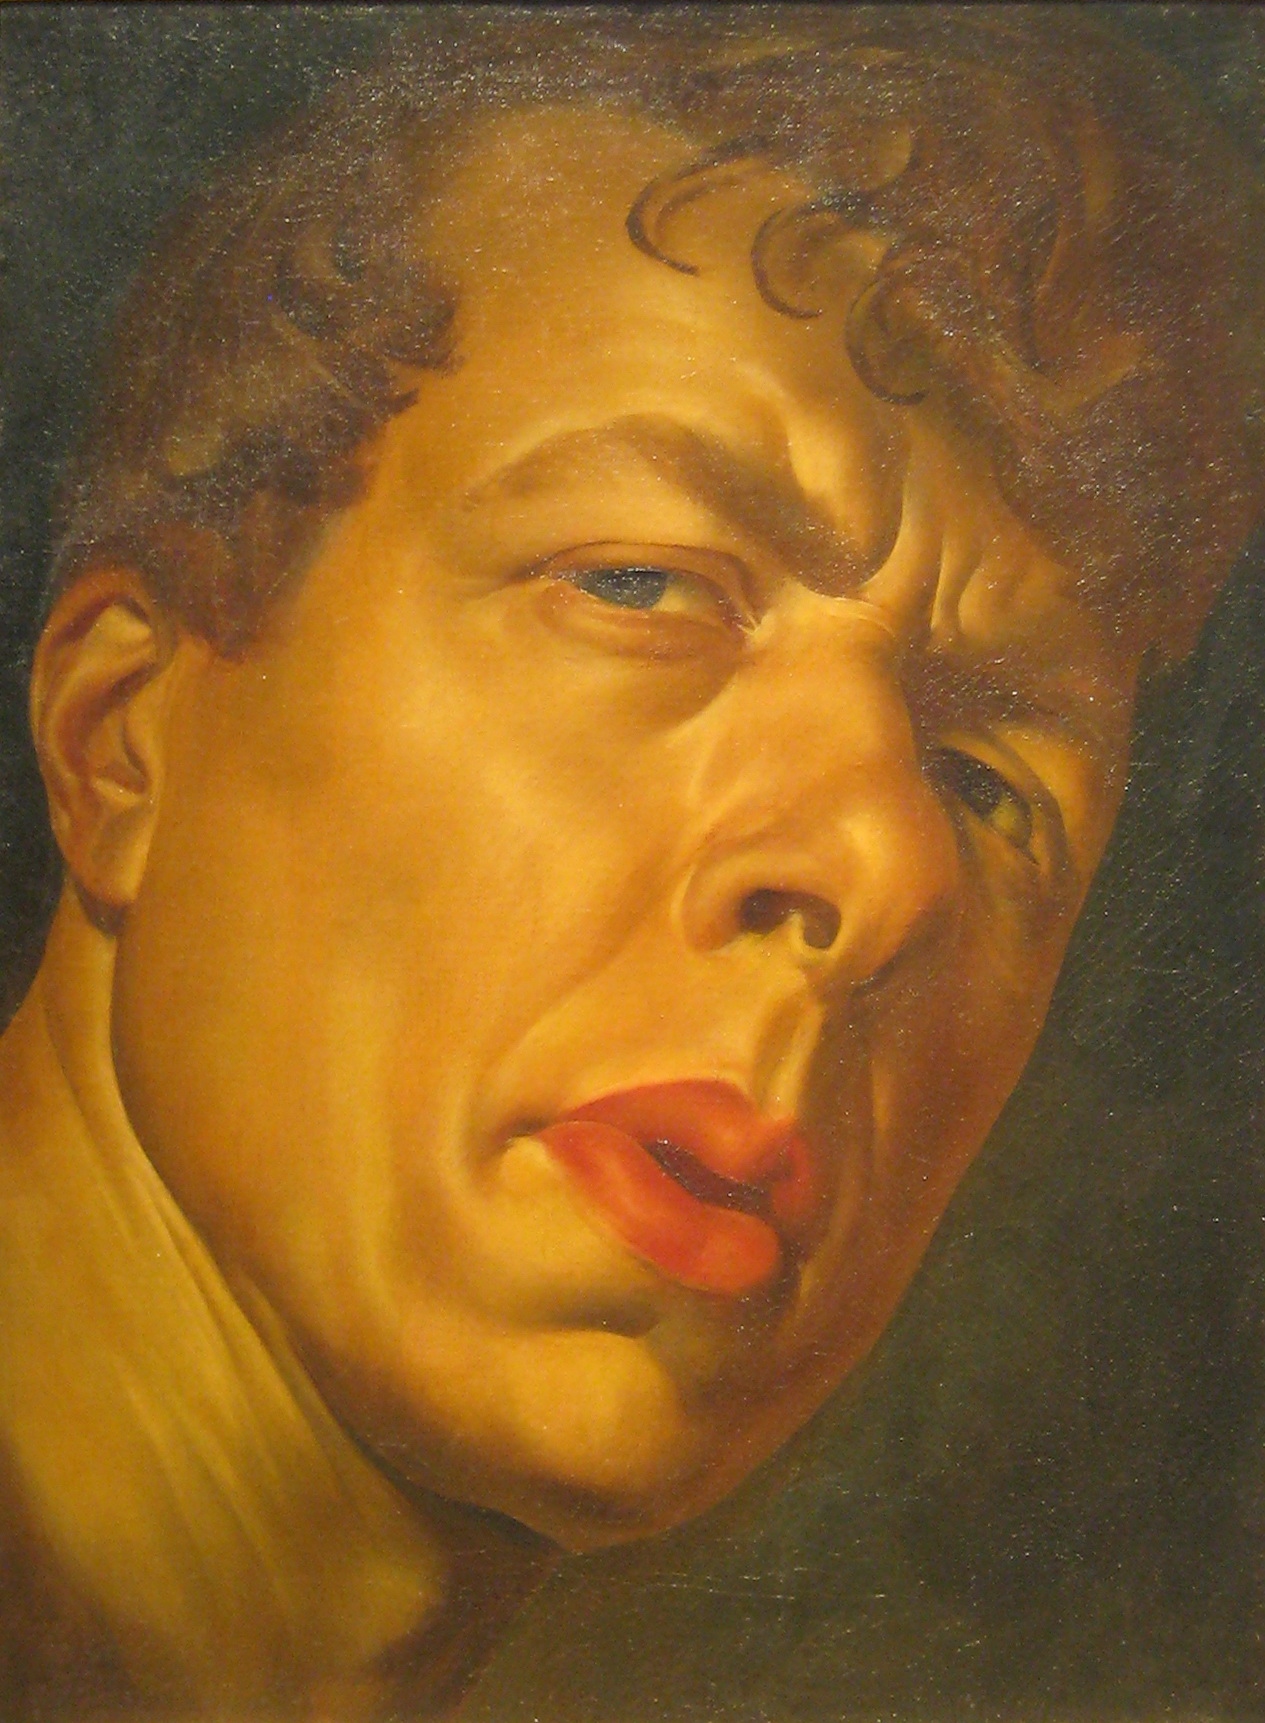 https://upload.wikimedia.org/wikipedia/commons/2/2a/Boris_Grigoriev_by_A.Yakovlev_%281920s%2C_private_coll%29.jpg